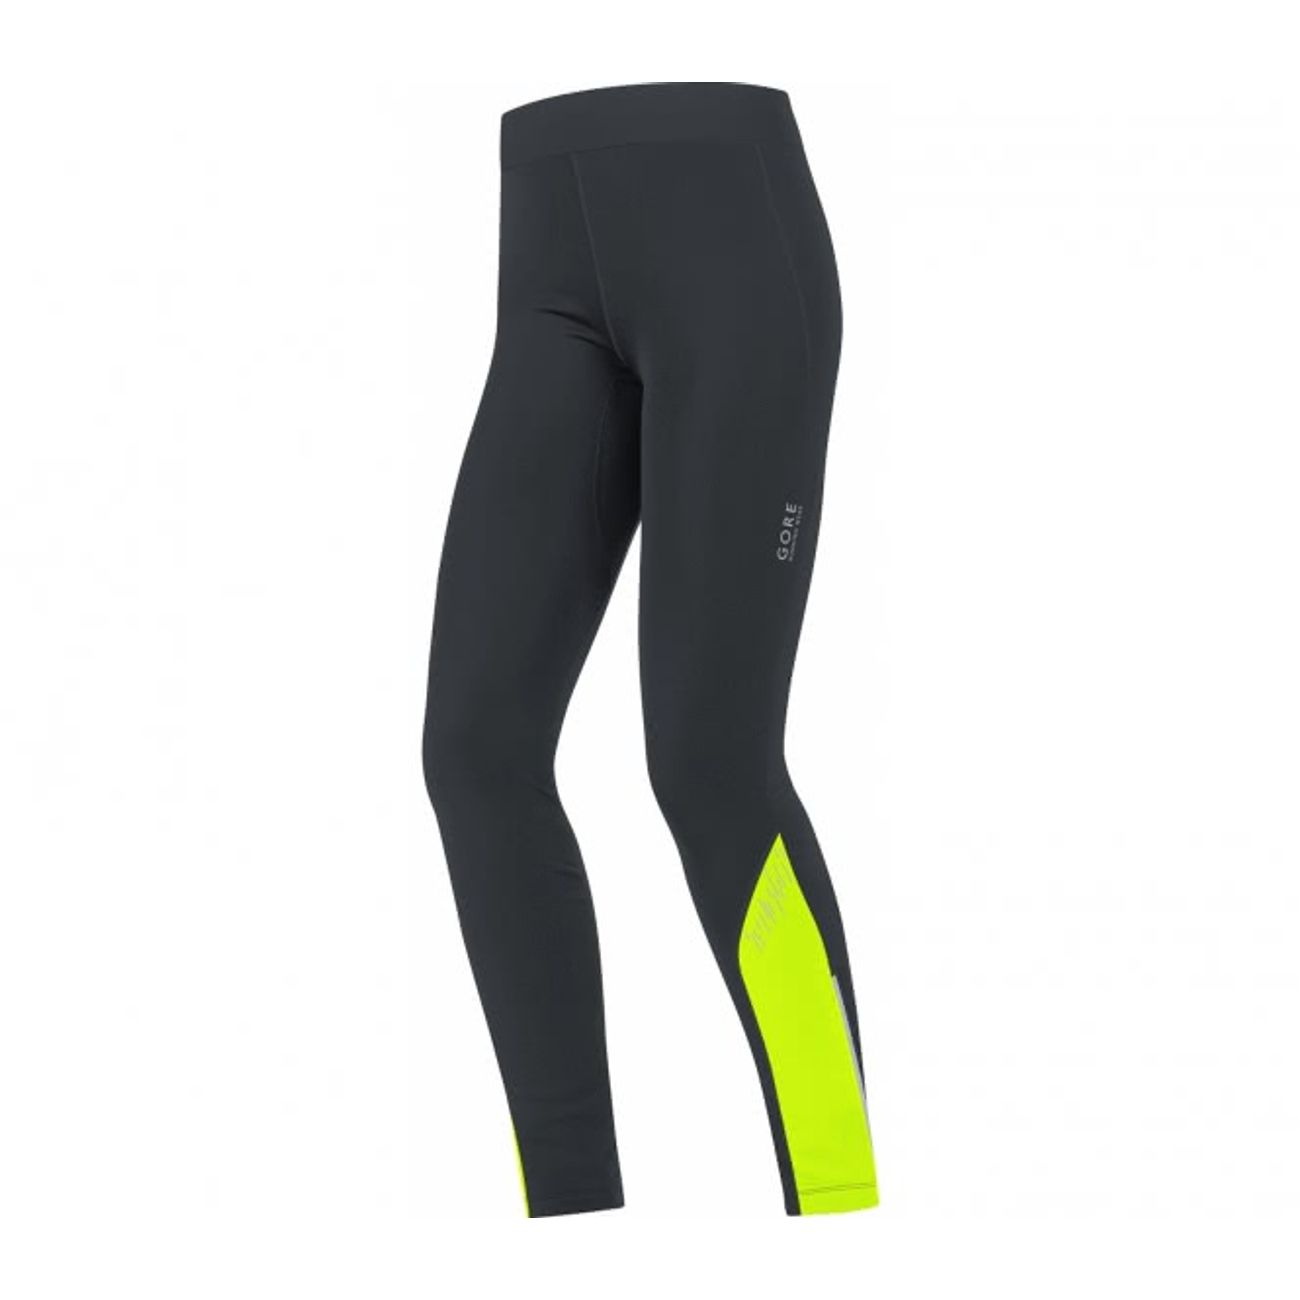 running femme GORE RUNNING WEAR® GORE RUNNING WEAR® - Mythos 2.0 Thermo Femmes exécutant Tight (noir/jaune)